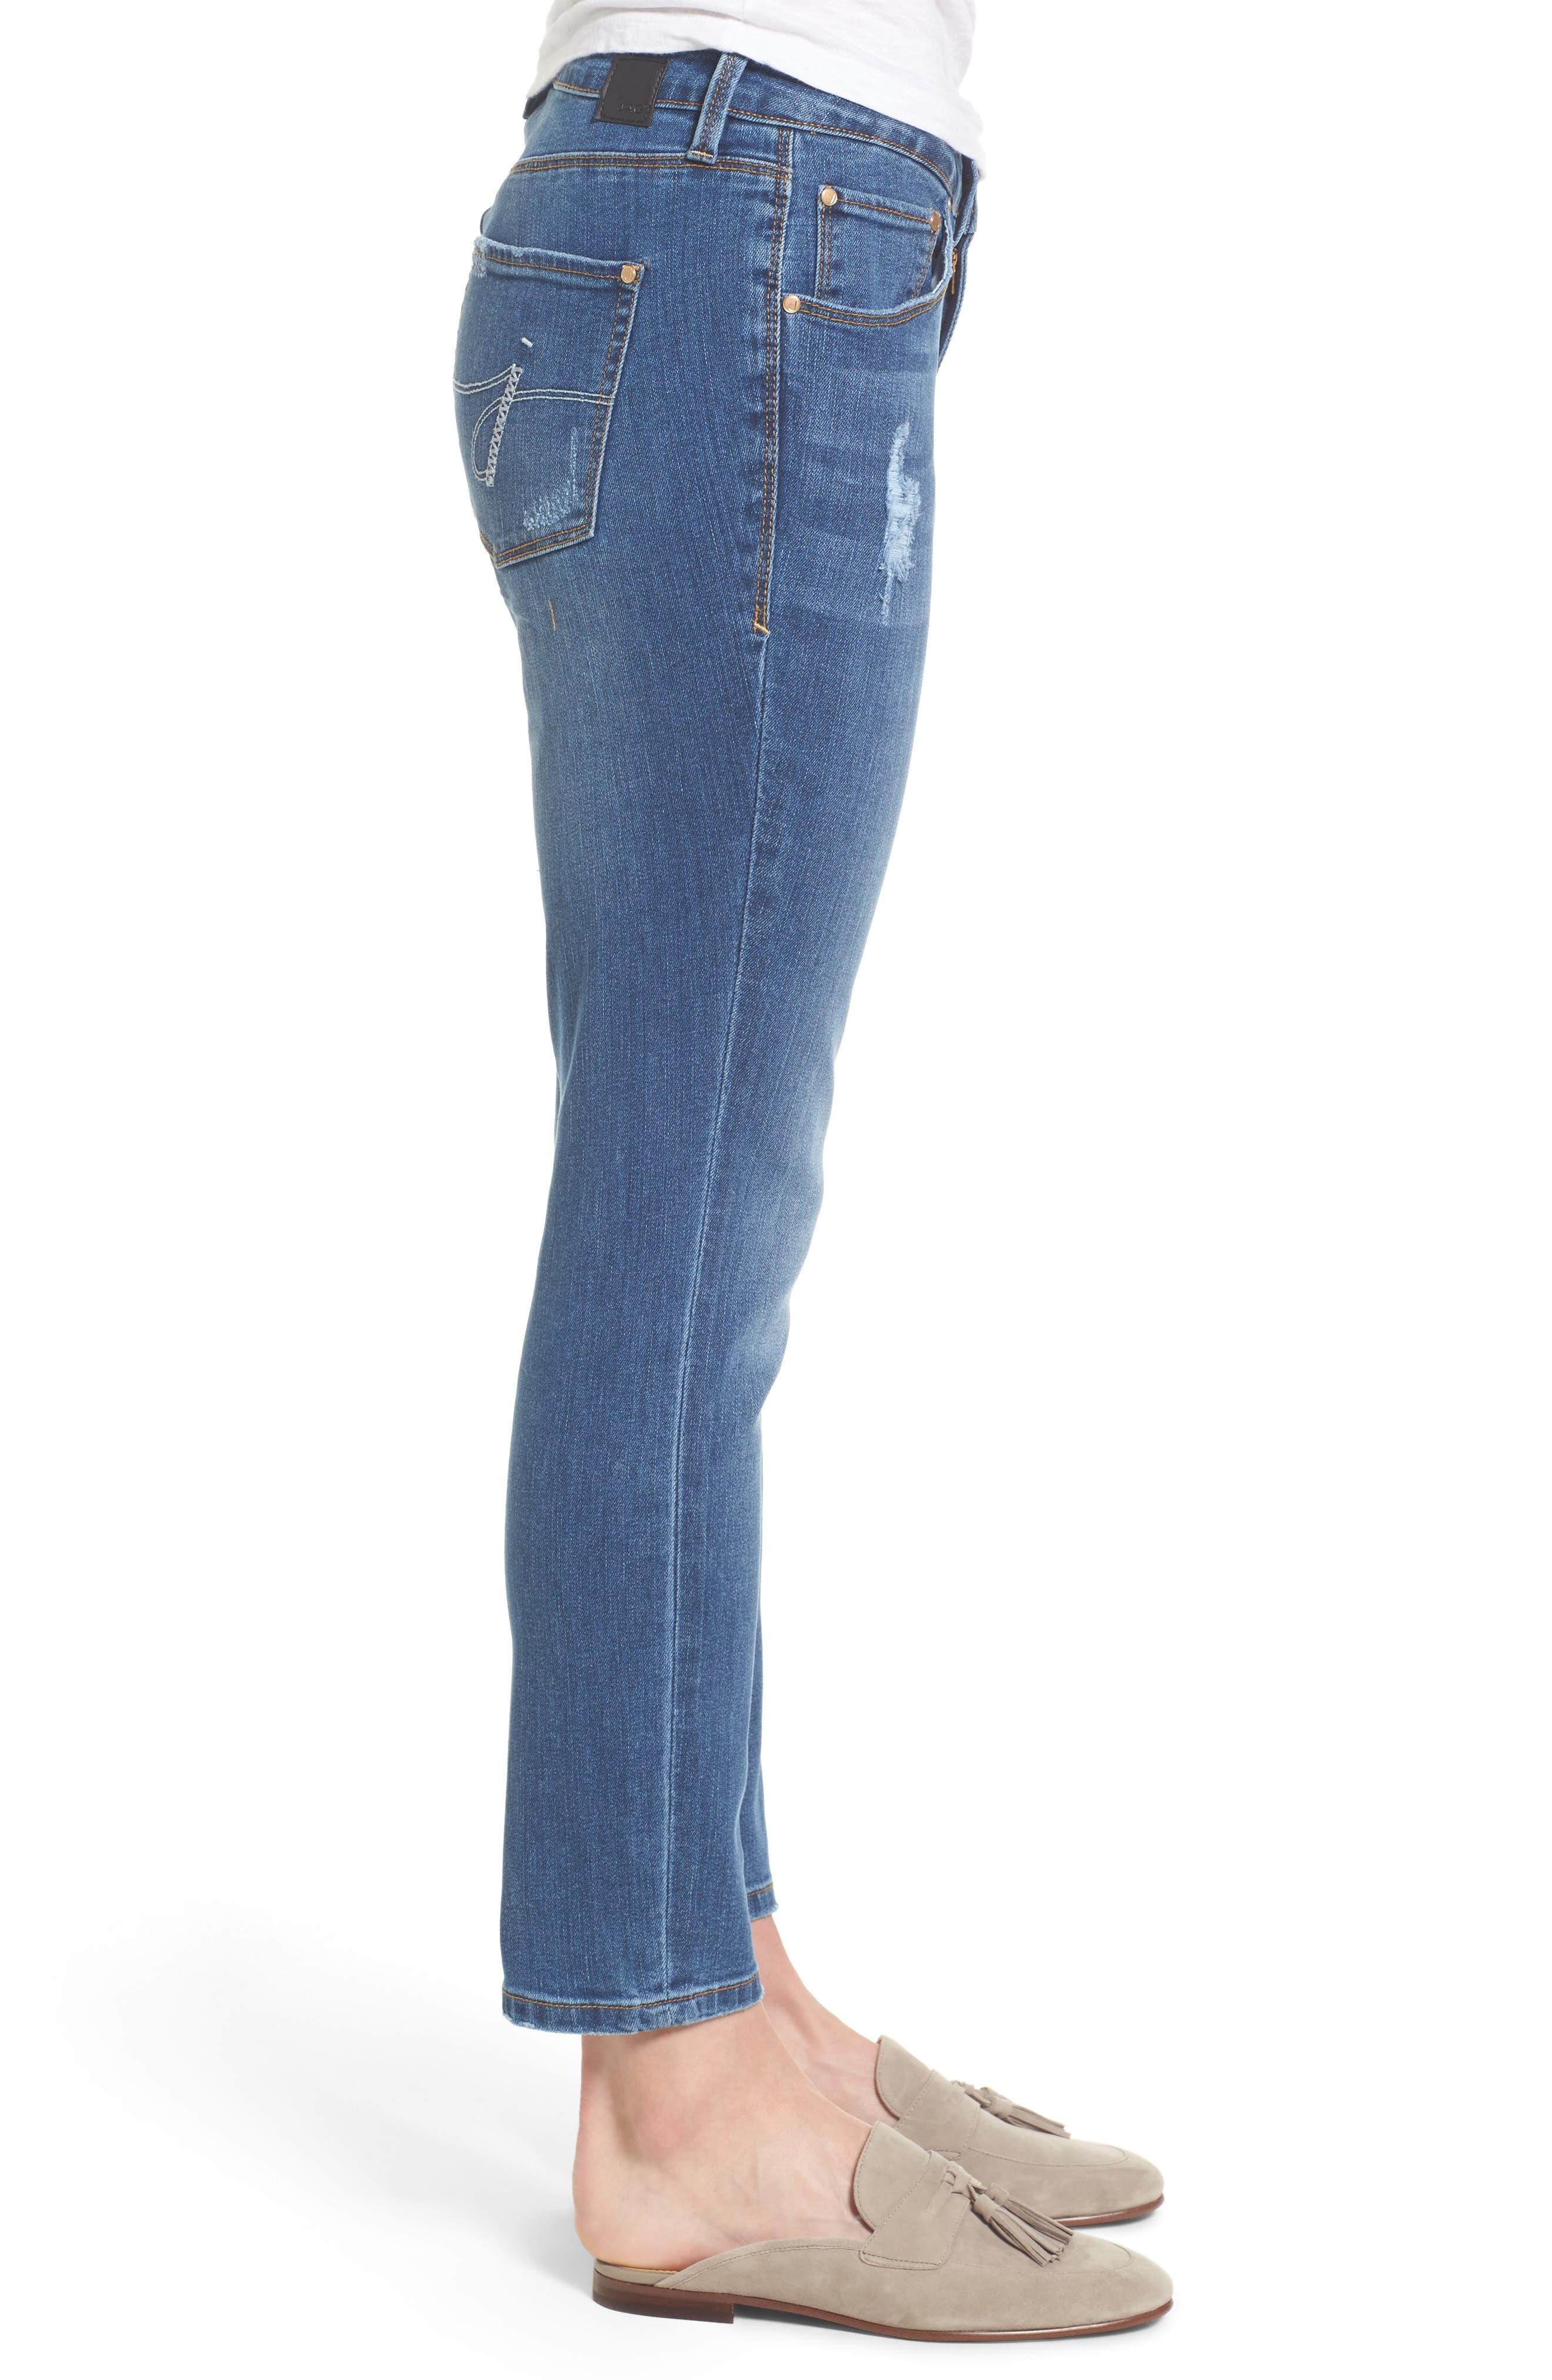 Mera Skinny Ankle Jeans,                             Alternate thumbnail 3, color,                             Mineral Wash